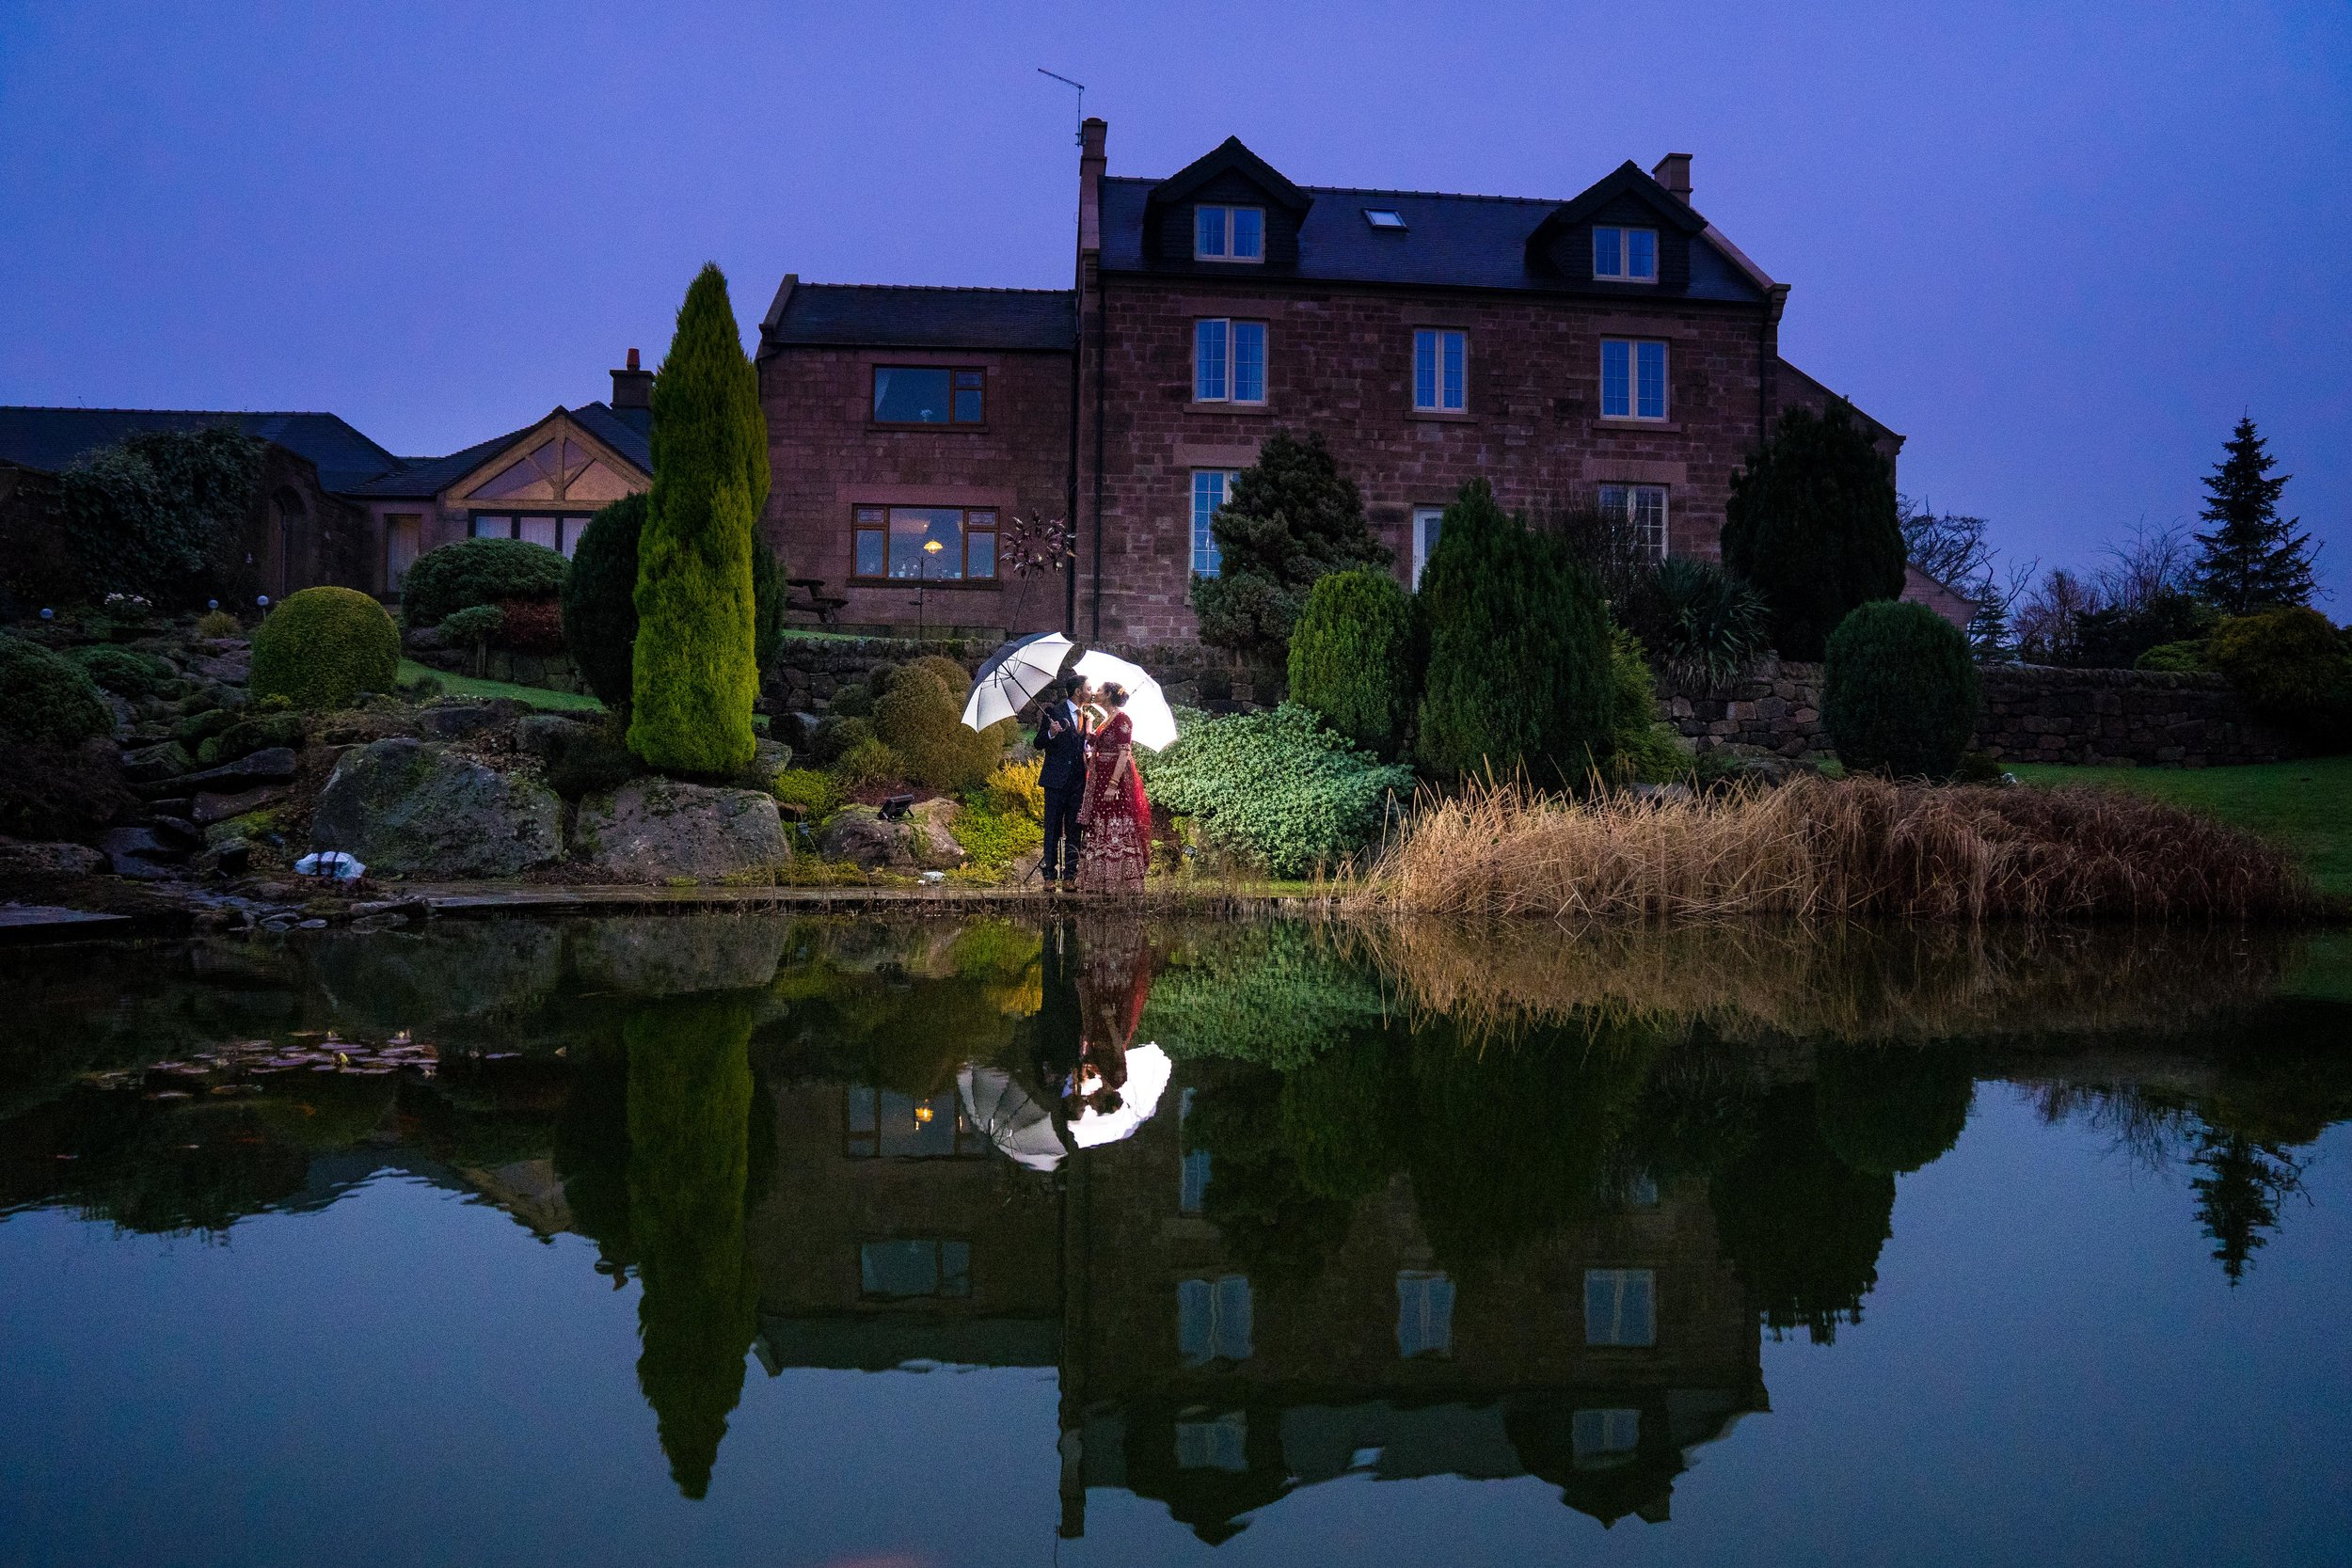 christmas-winter-wedding-photography-videography-heaton-house-48